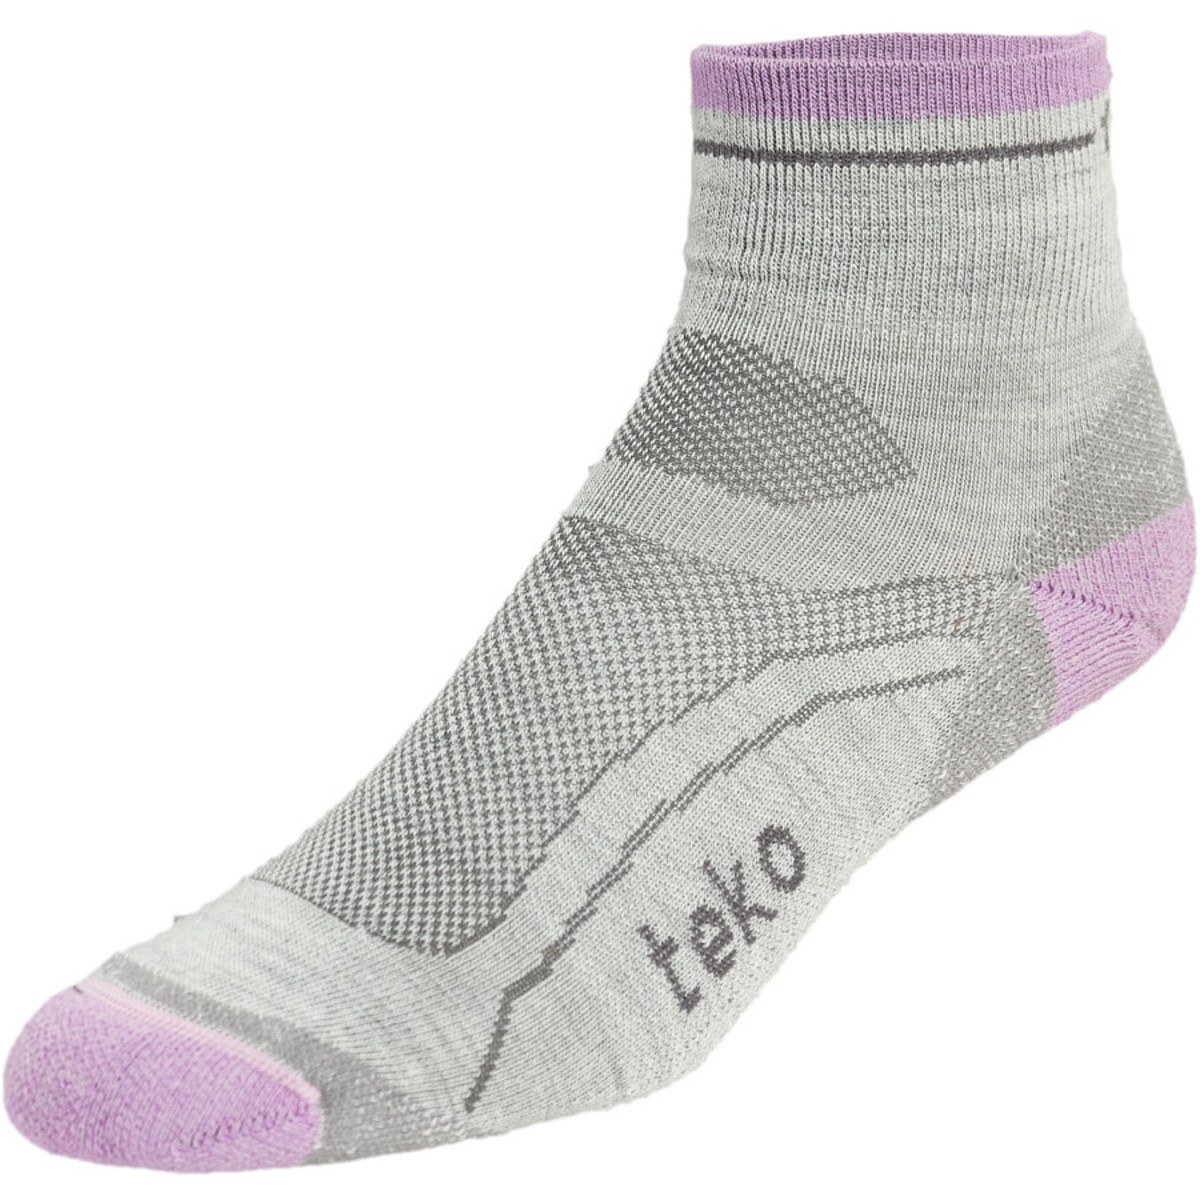 Teko Organic SIN3RGI Light Minicrew Running Sock